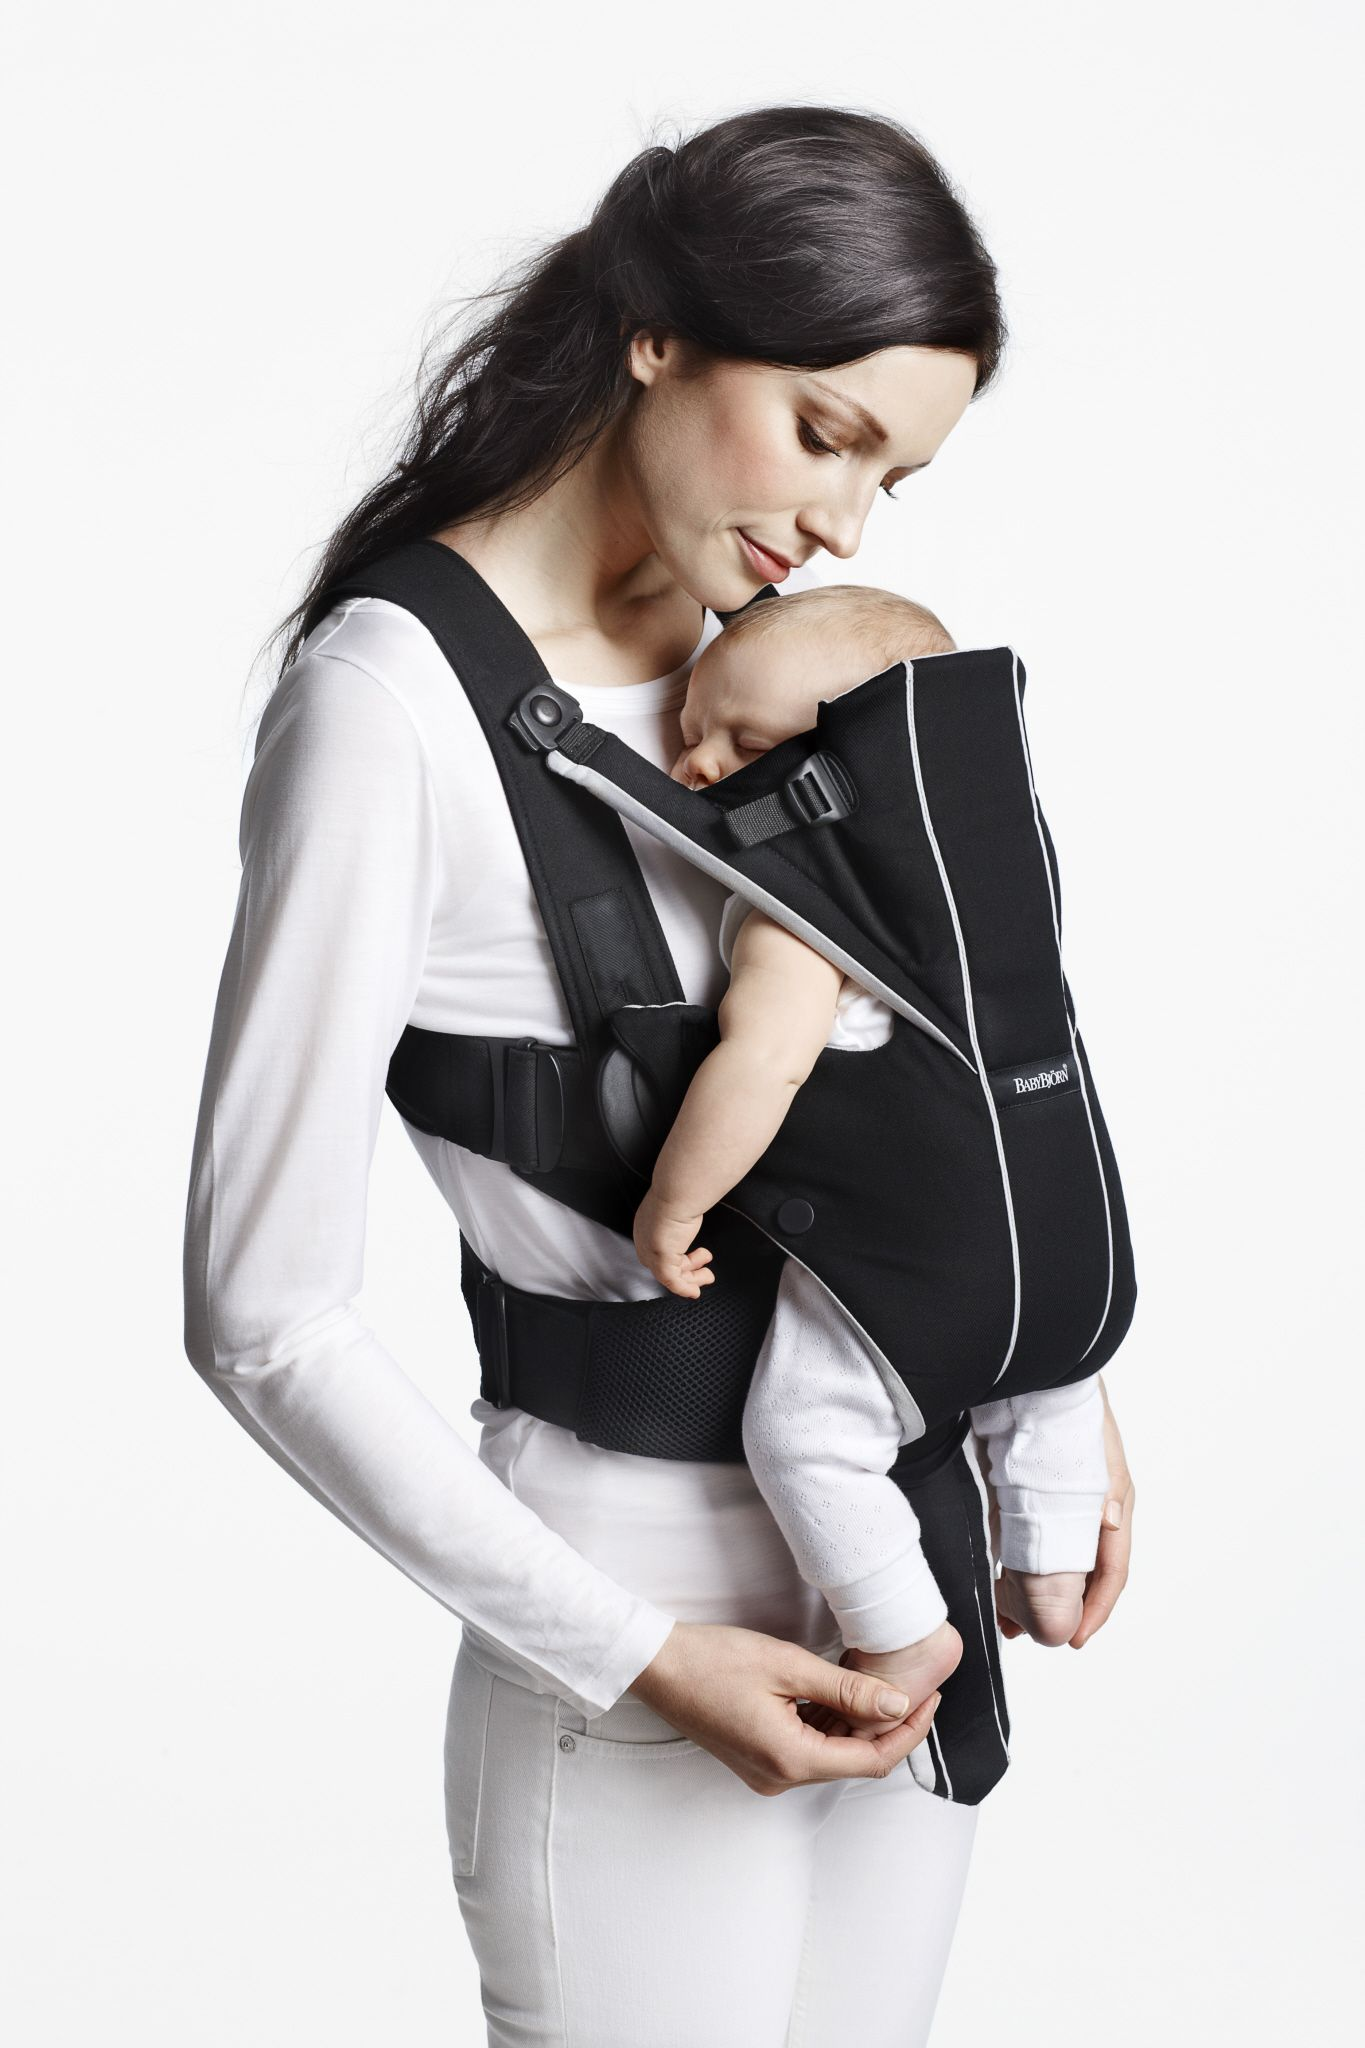 Babybjorn S Most Popular Baby Carrier Gets Even Better